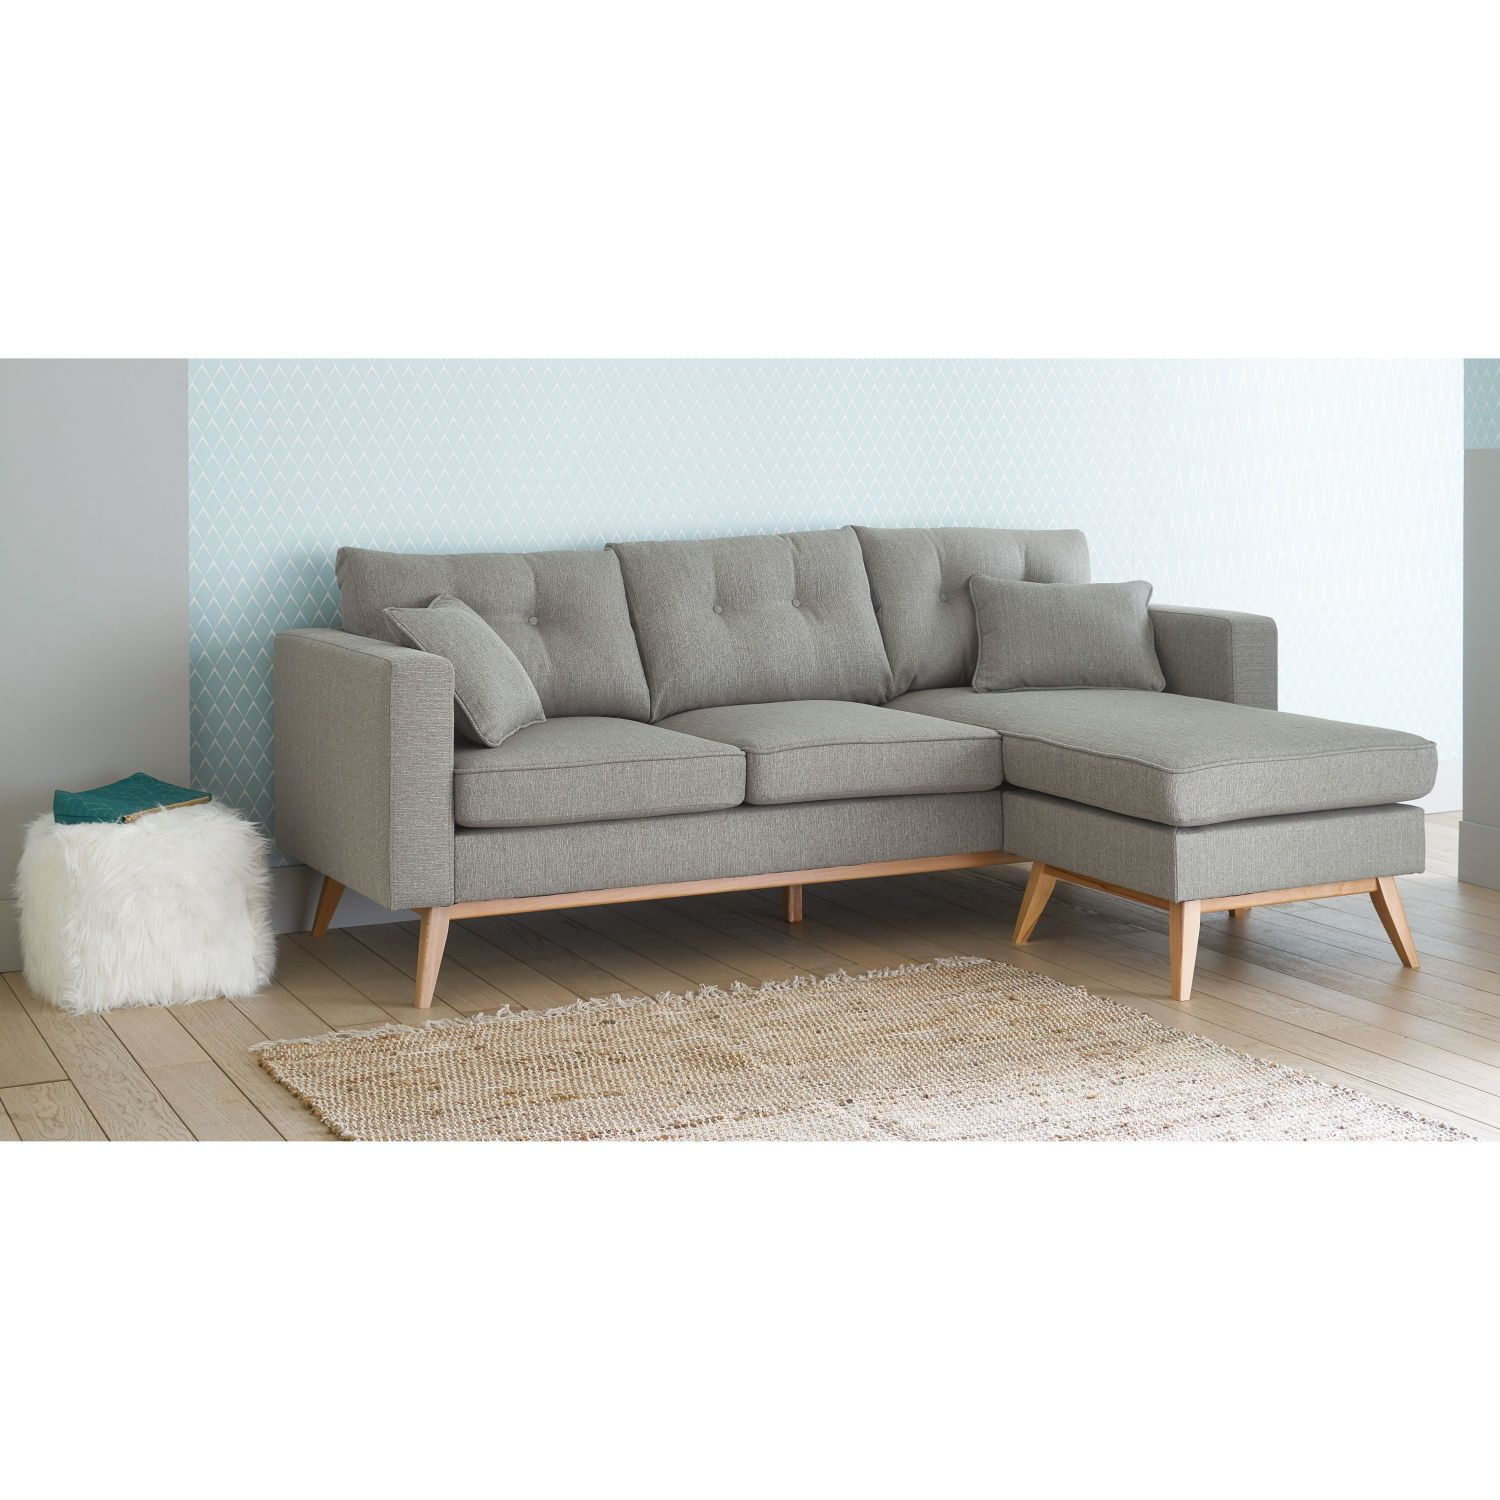 Actona Ecksofa Norwich Sofas In 2019 Home Decor Modular Corner Sofa Sofa Grey